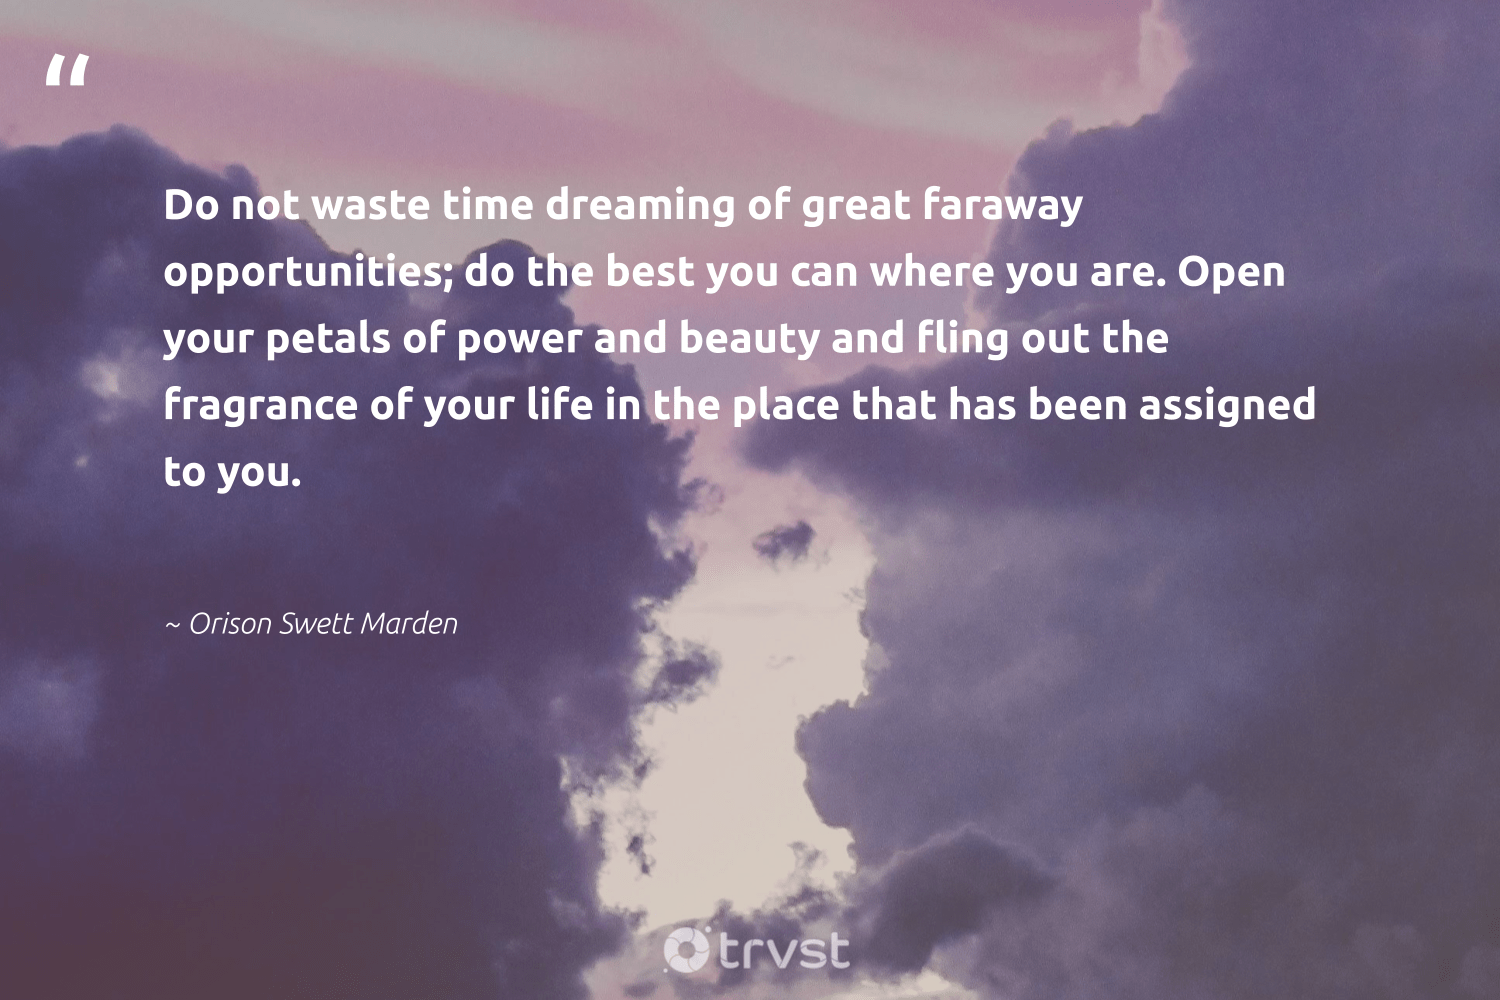 """Do not waste time dreaming of great faraway opportunities; do the best you can where you are. Open your petals of power and beauty and fling out the fragrance of your life in the place that has been assigned to you.""  - Orison Swett Marden #trvst #quotes #waste #beauty #ethicalbusiness #socialchange #weareallone #thinkgreen #dogood #beinspired #betterplanet #planetearthfirst"